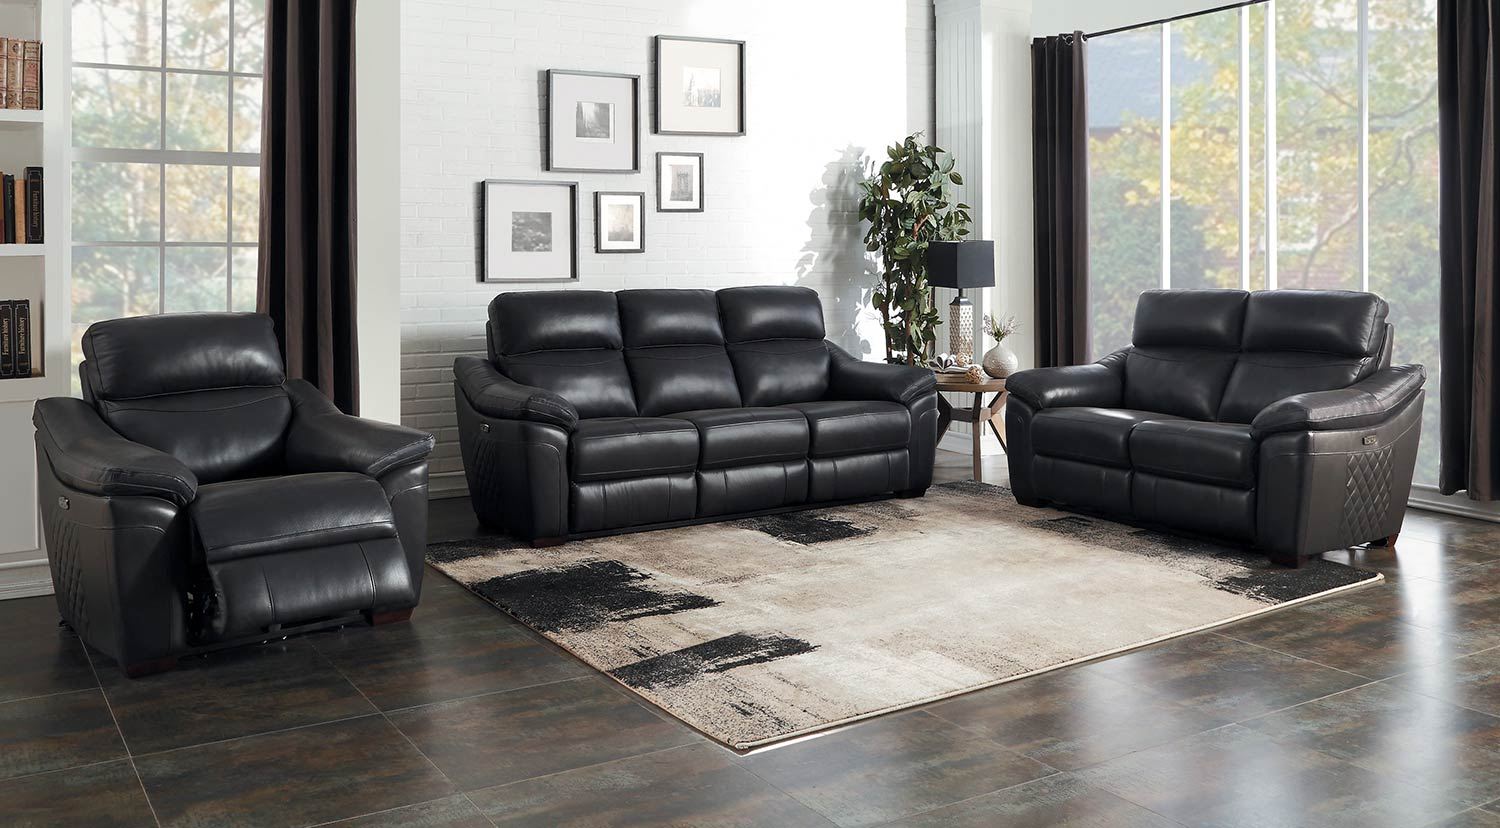 Homelegance Renzo Power Reclining Sofa Set - Dark Gray